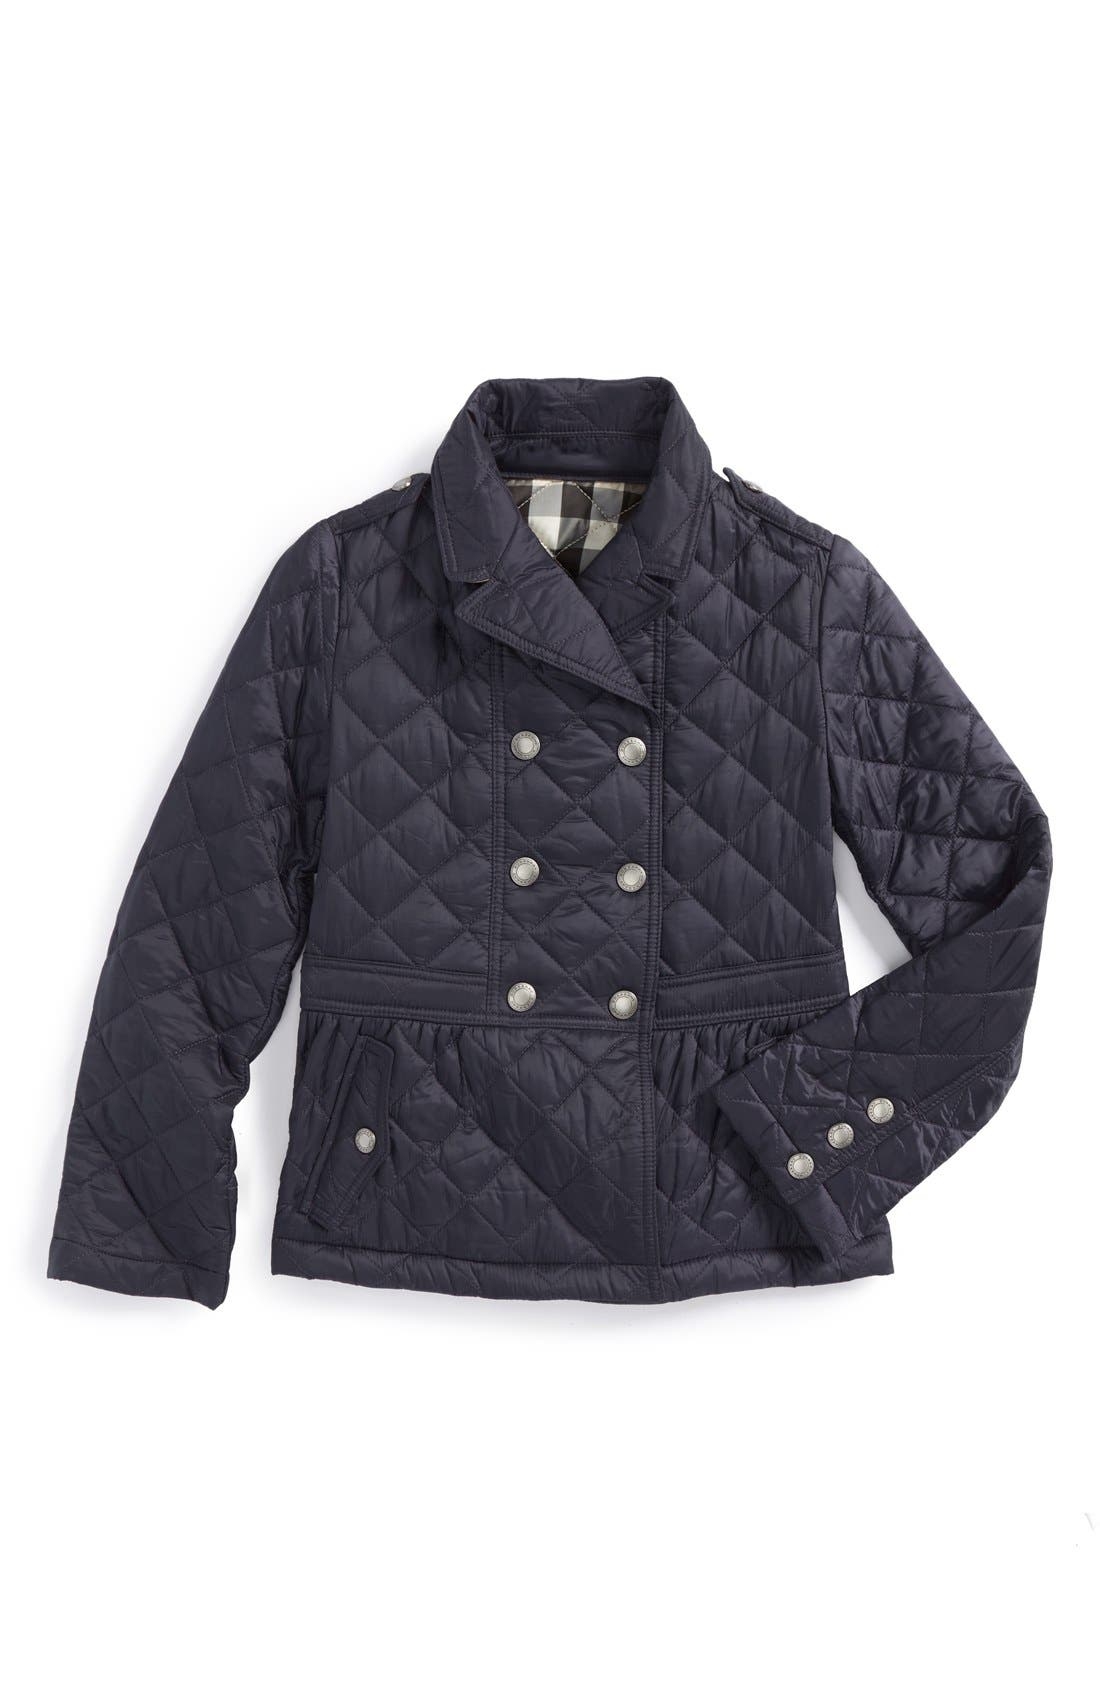 Alternate Image 1 Selected - Burberry 'Portree' Quilted Jacket (Little Girls)